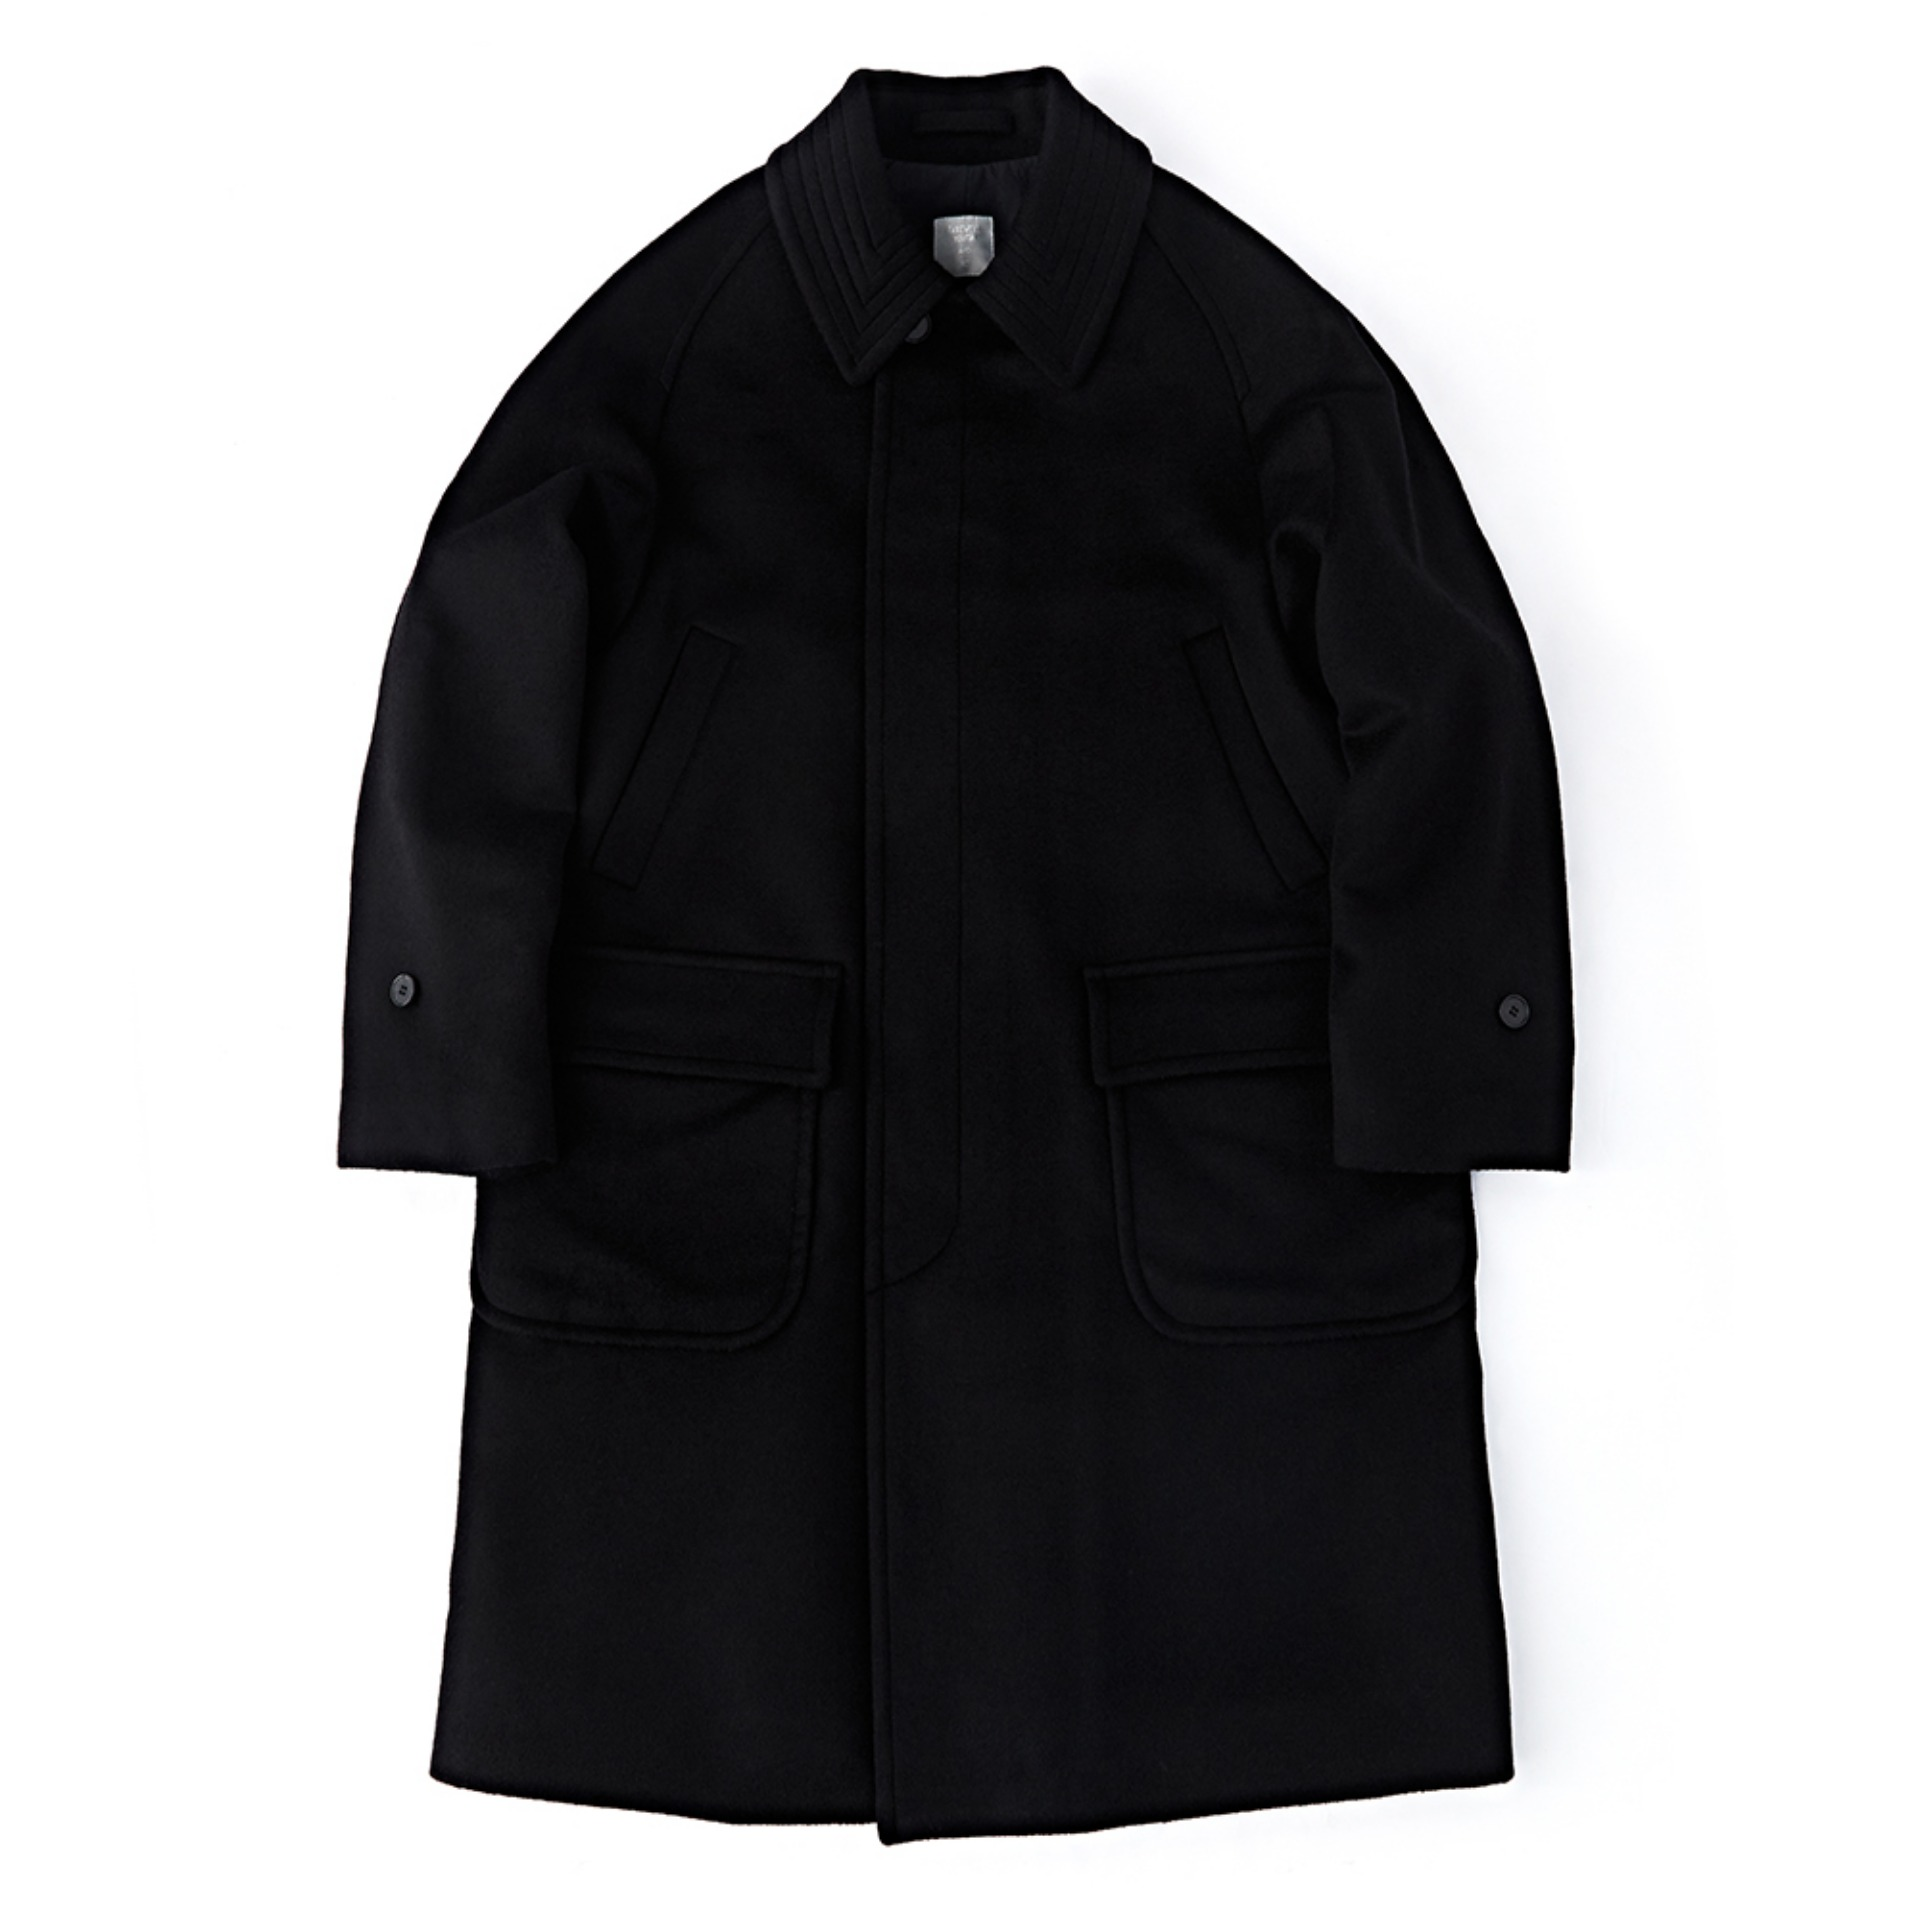 "Another Office""Voyager Balmaccan Coat""(Soft Black)"